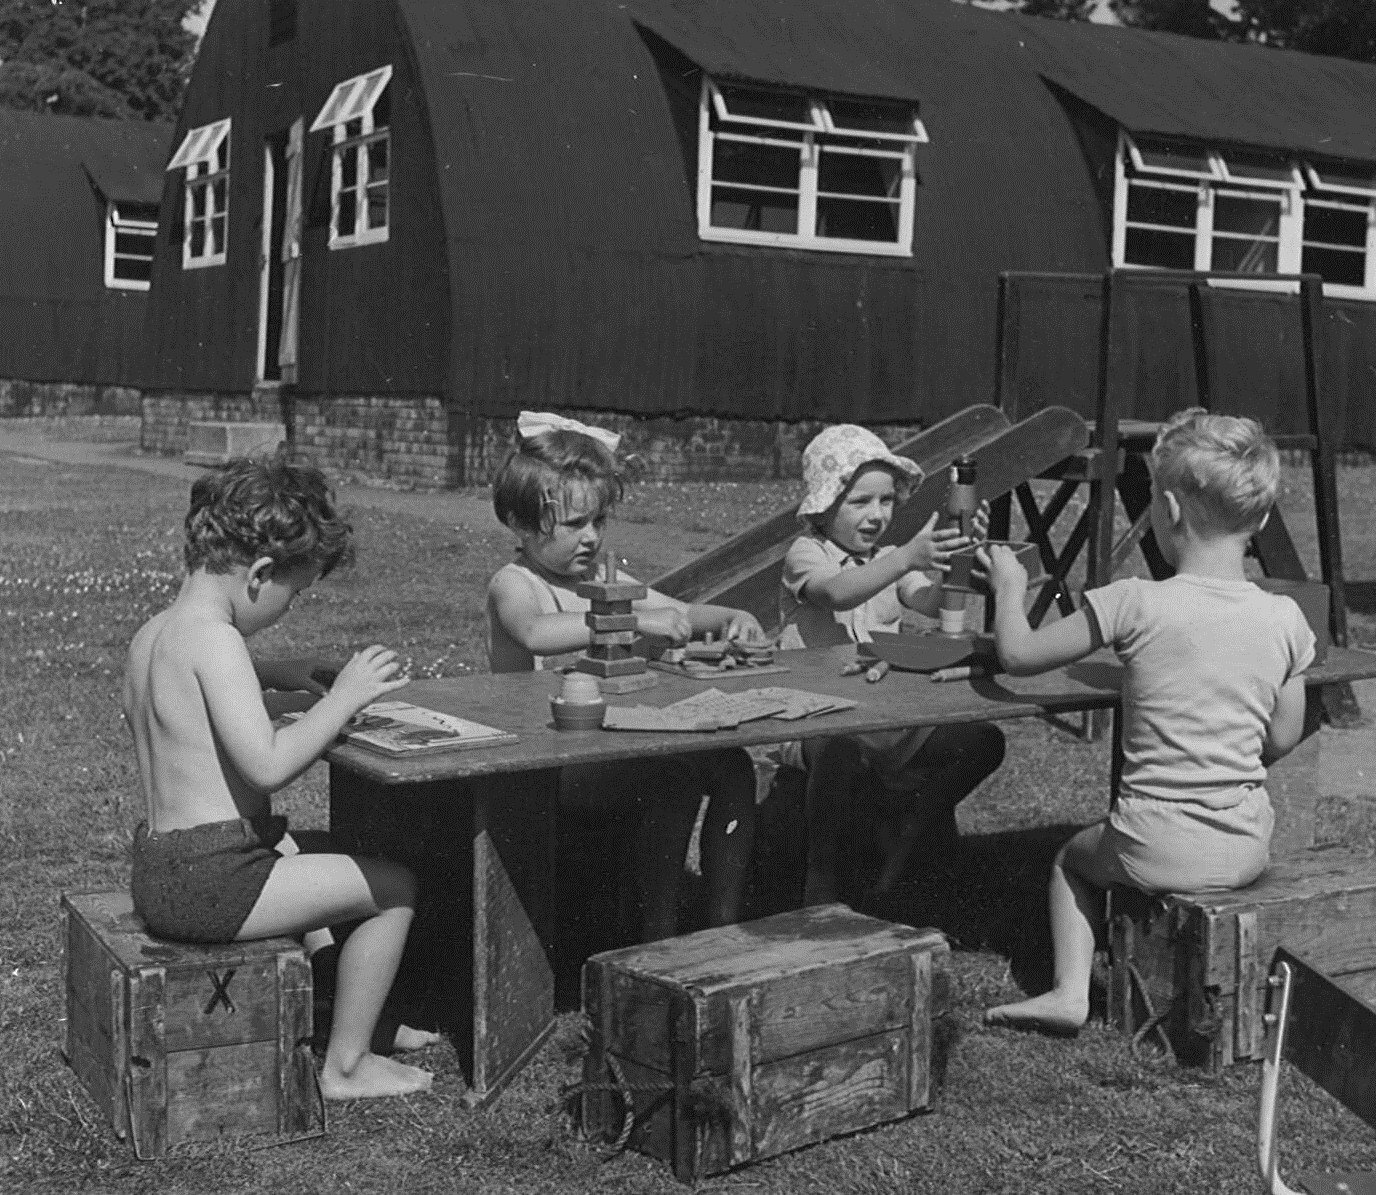 Practising school Wimbledon, circa 1950, using army Nissen huts for classrooms